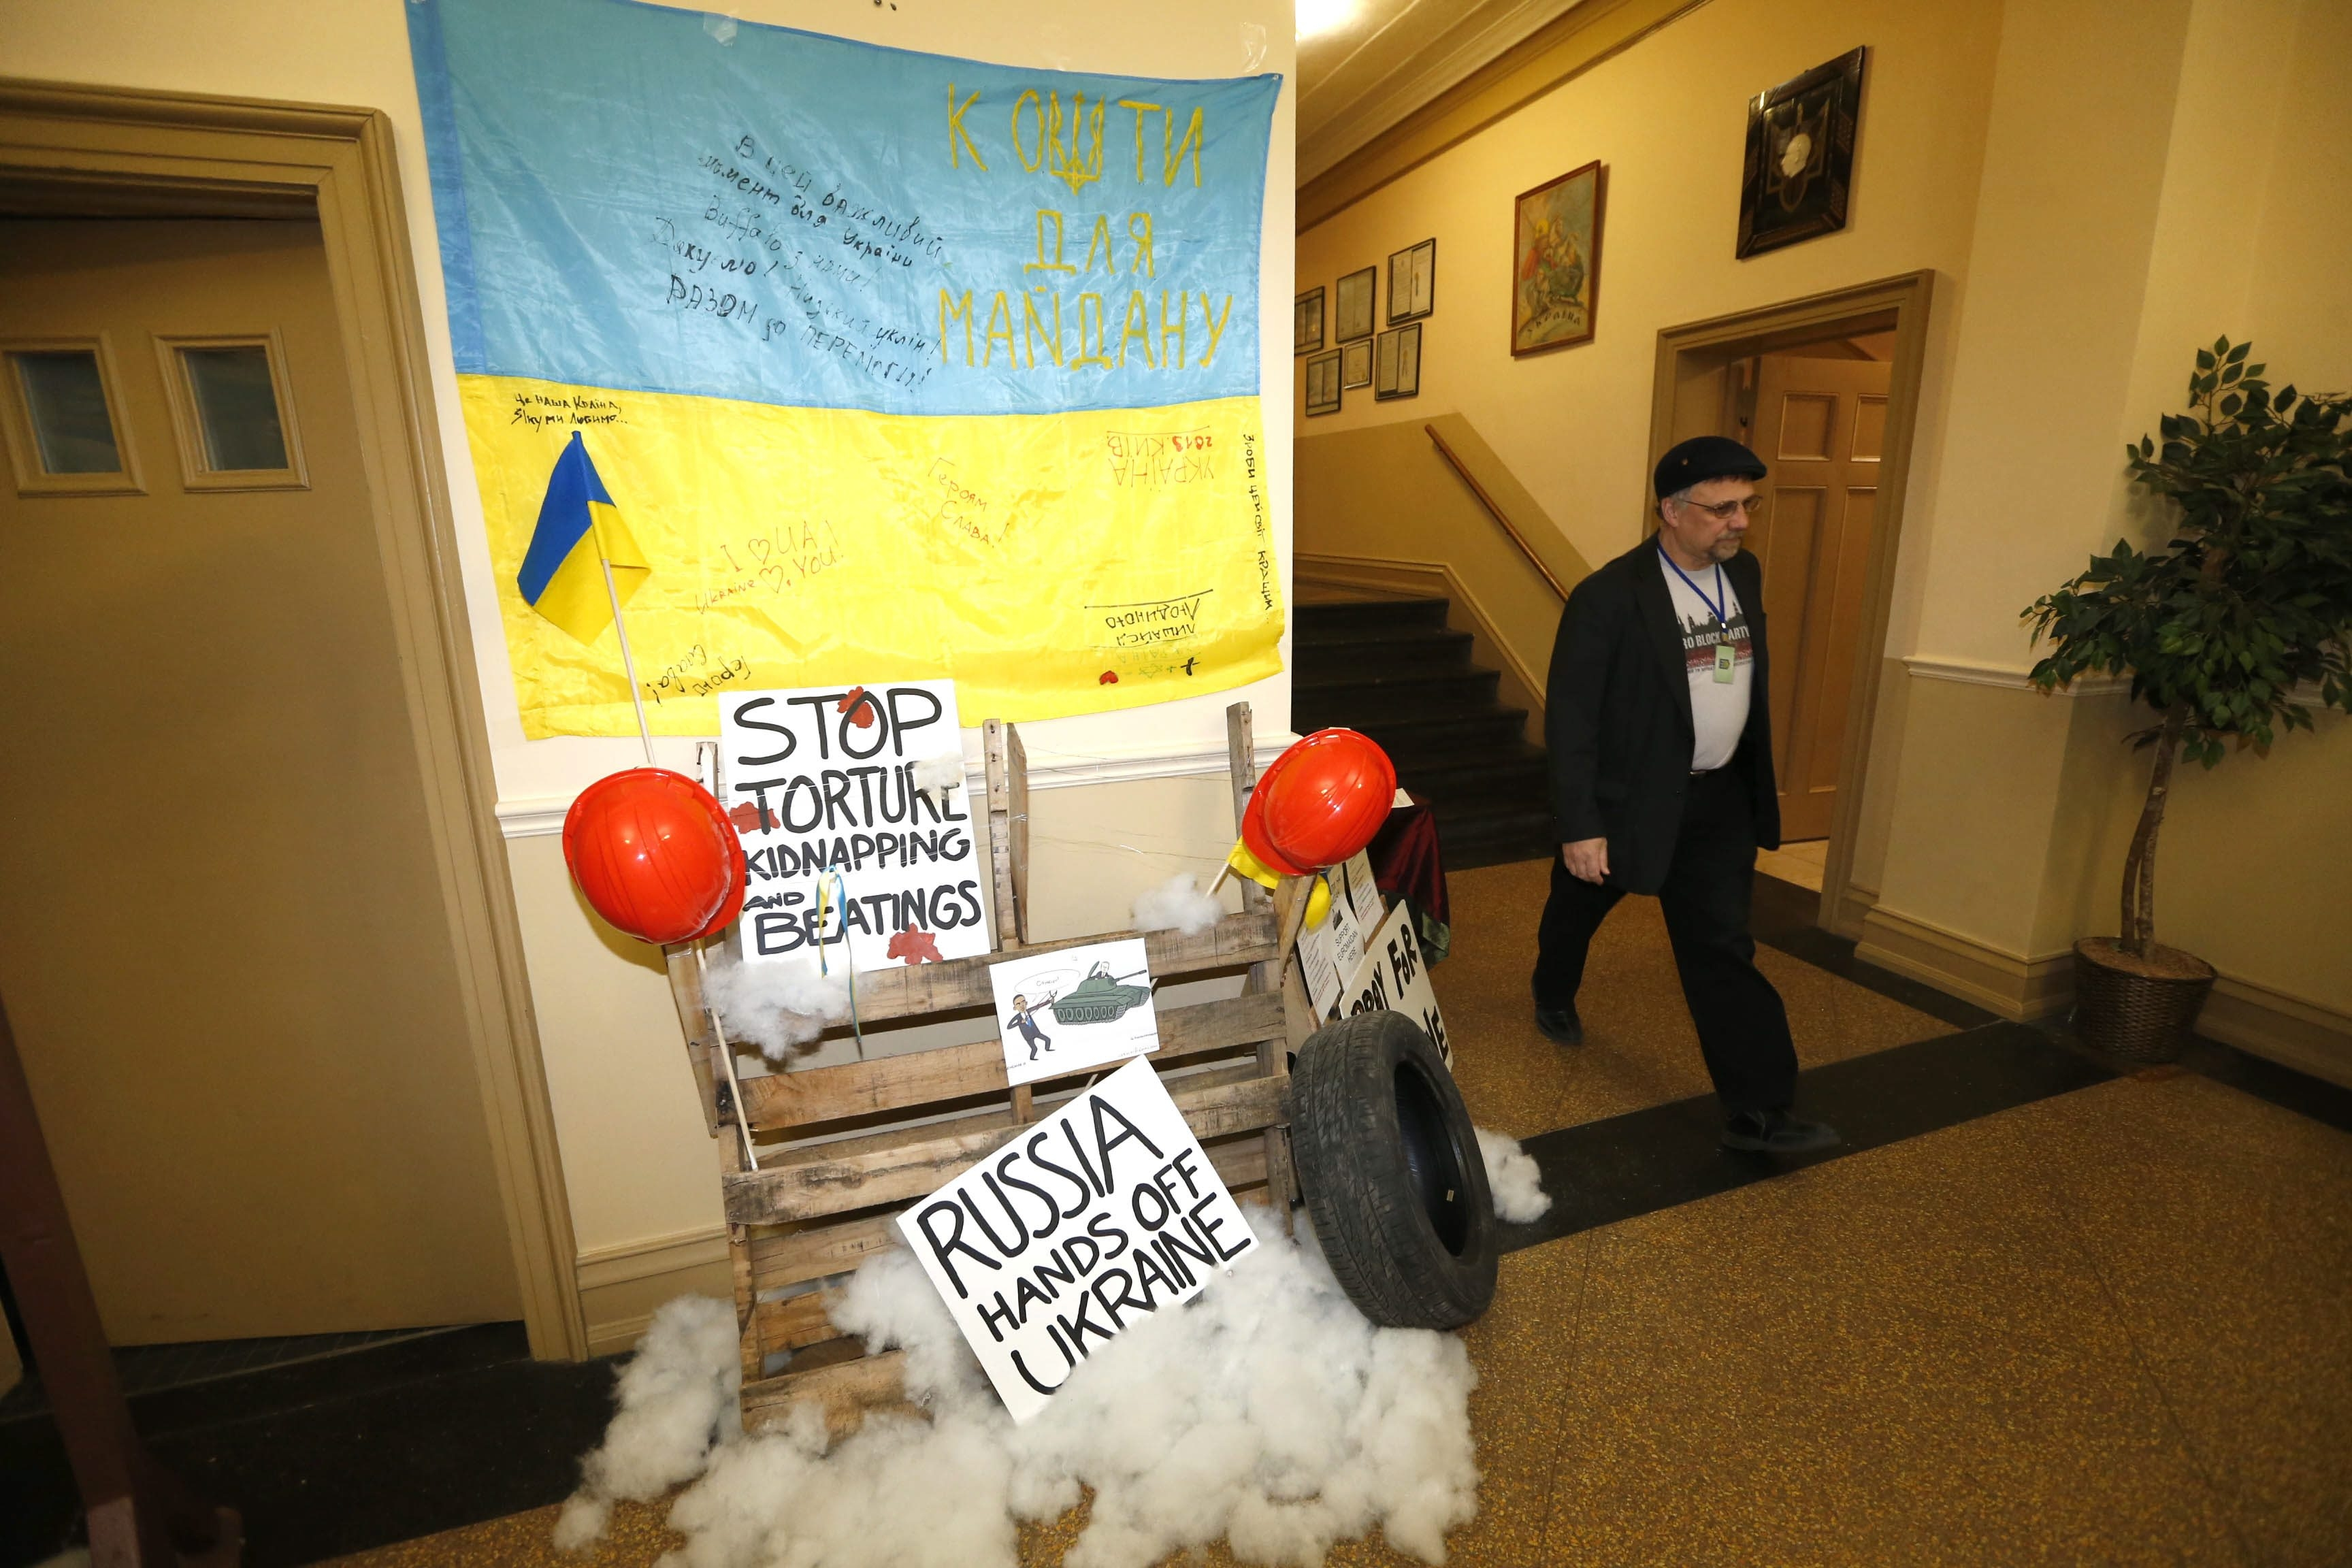 Emil Bandriwsky walks by a signed Ukrainian flag that was present at the recent uprising against Russia in that country. It is displayed above a tribute memorial in the Dnipro Ukrainian Culture Center's lobby on Genesee Street.